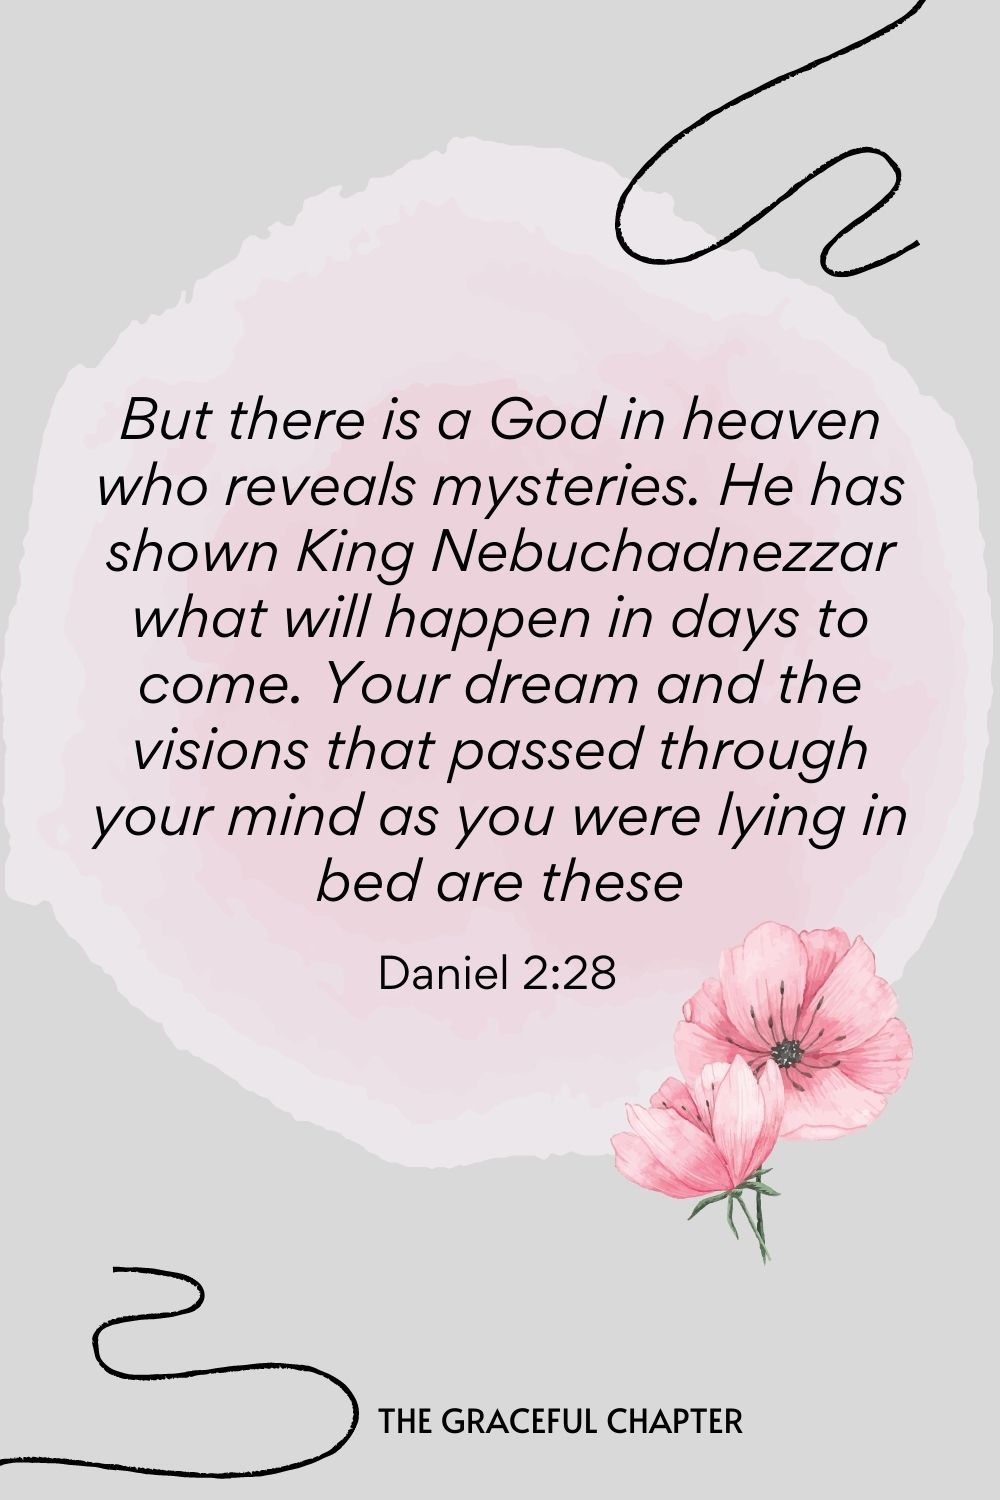 But there is a God in heaven who reveals mysteries. He has shown King Nebuchadnezzar what will happen in days to come. Your dream and the visions that passed through your mind as you were lying in bed are these  Daniel 2:28